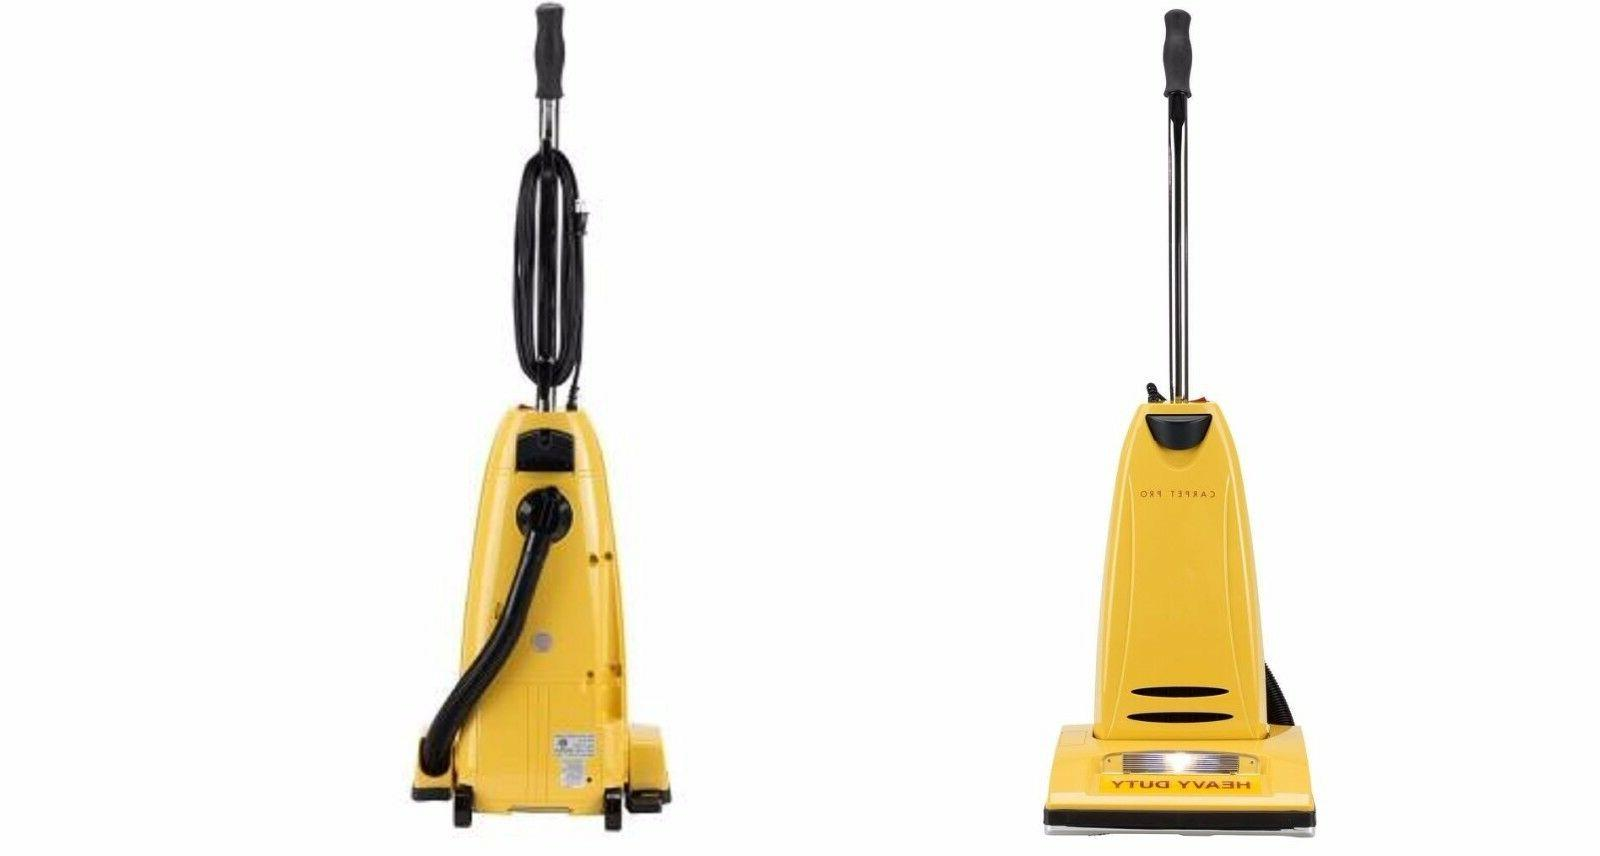 Carpet Pro Cpu-1 Heavy-Duty Household Upright Vacuum Cleaner